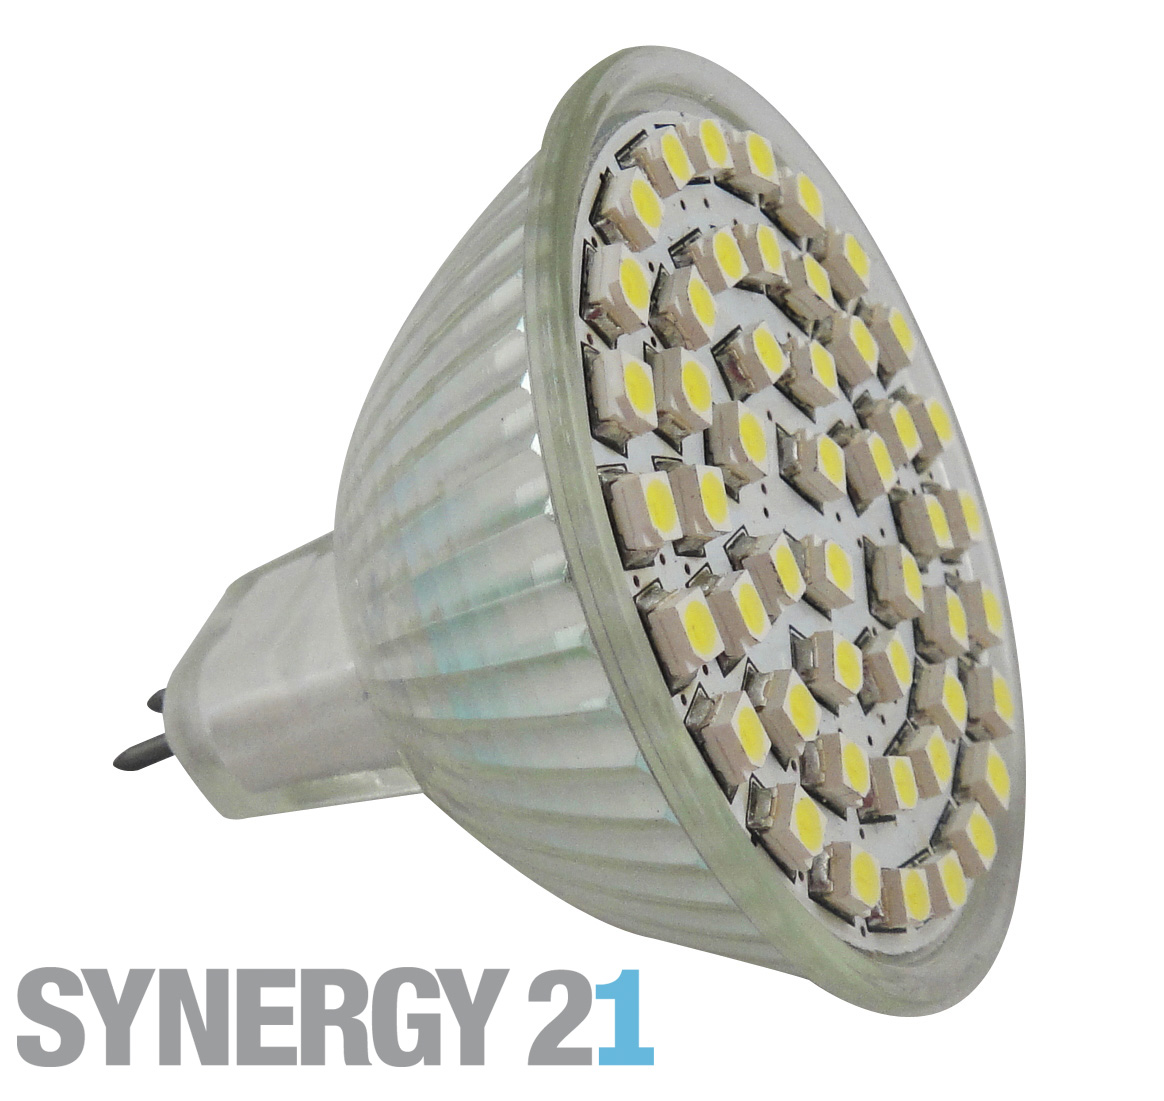 Allnet synergy21 retrofit led leuchtmittel for Leuchtmittel led